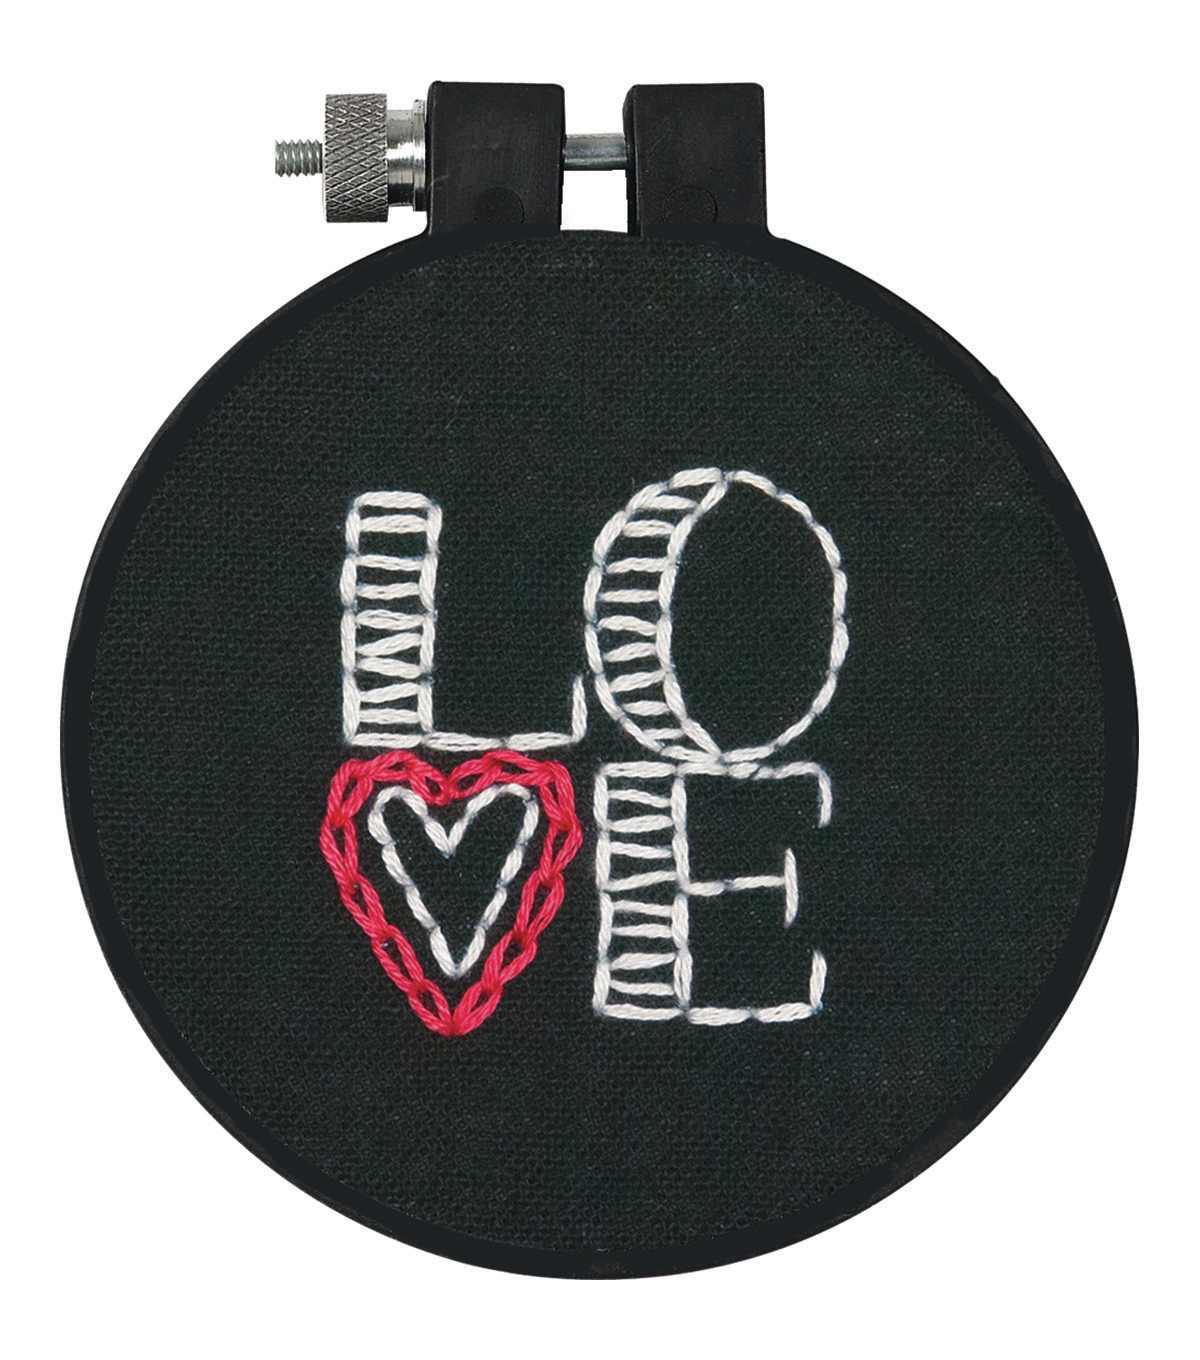 "Learn-A-Craft Love Stamped Embroidery Kit-3"" Round Stitched In Thread"